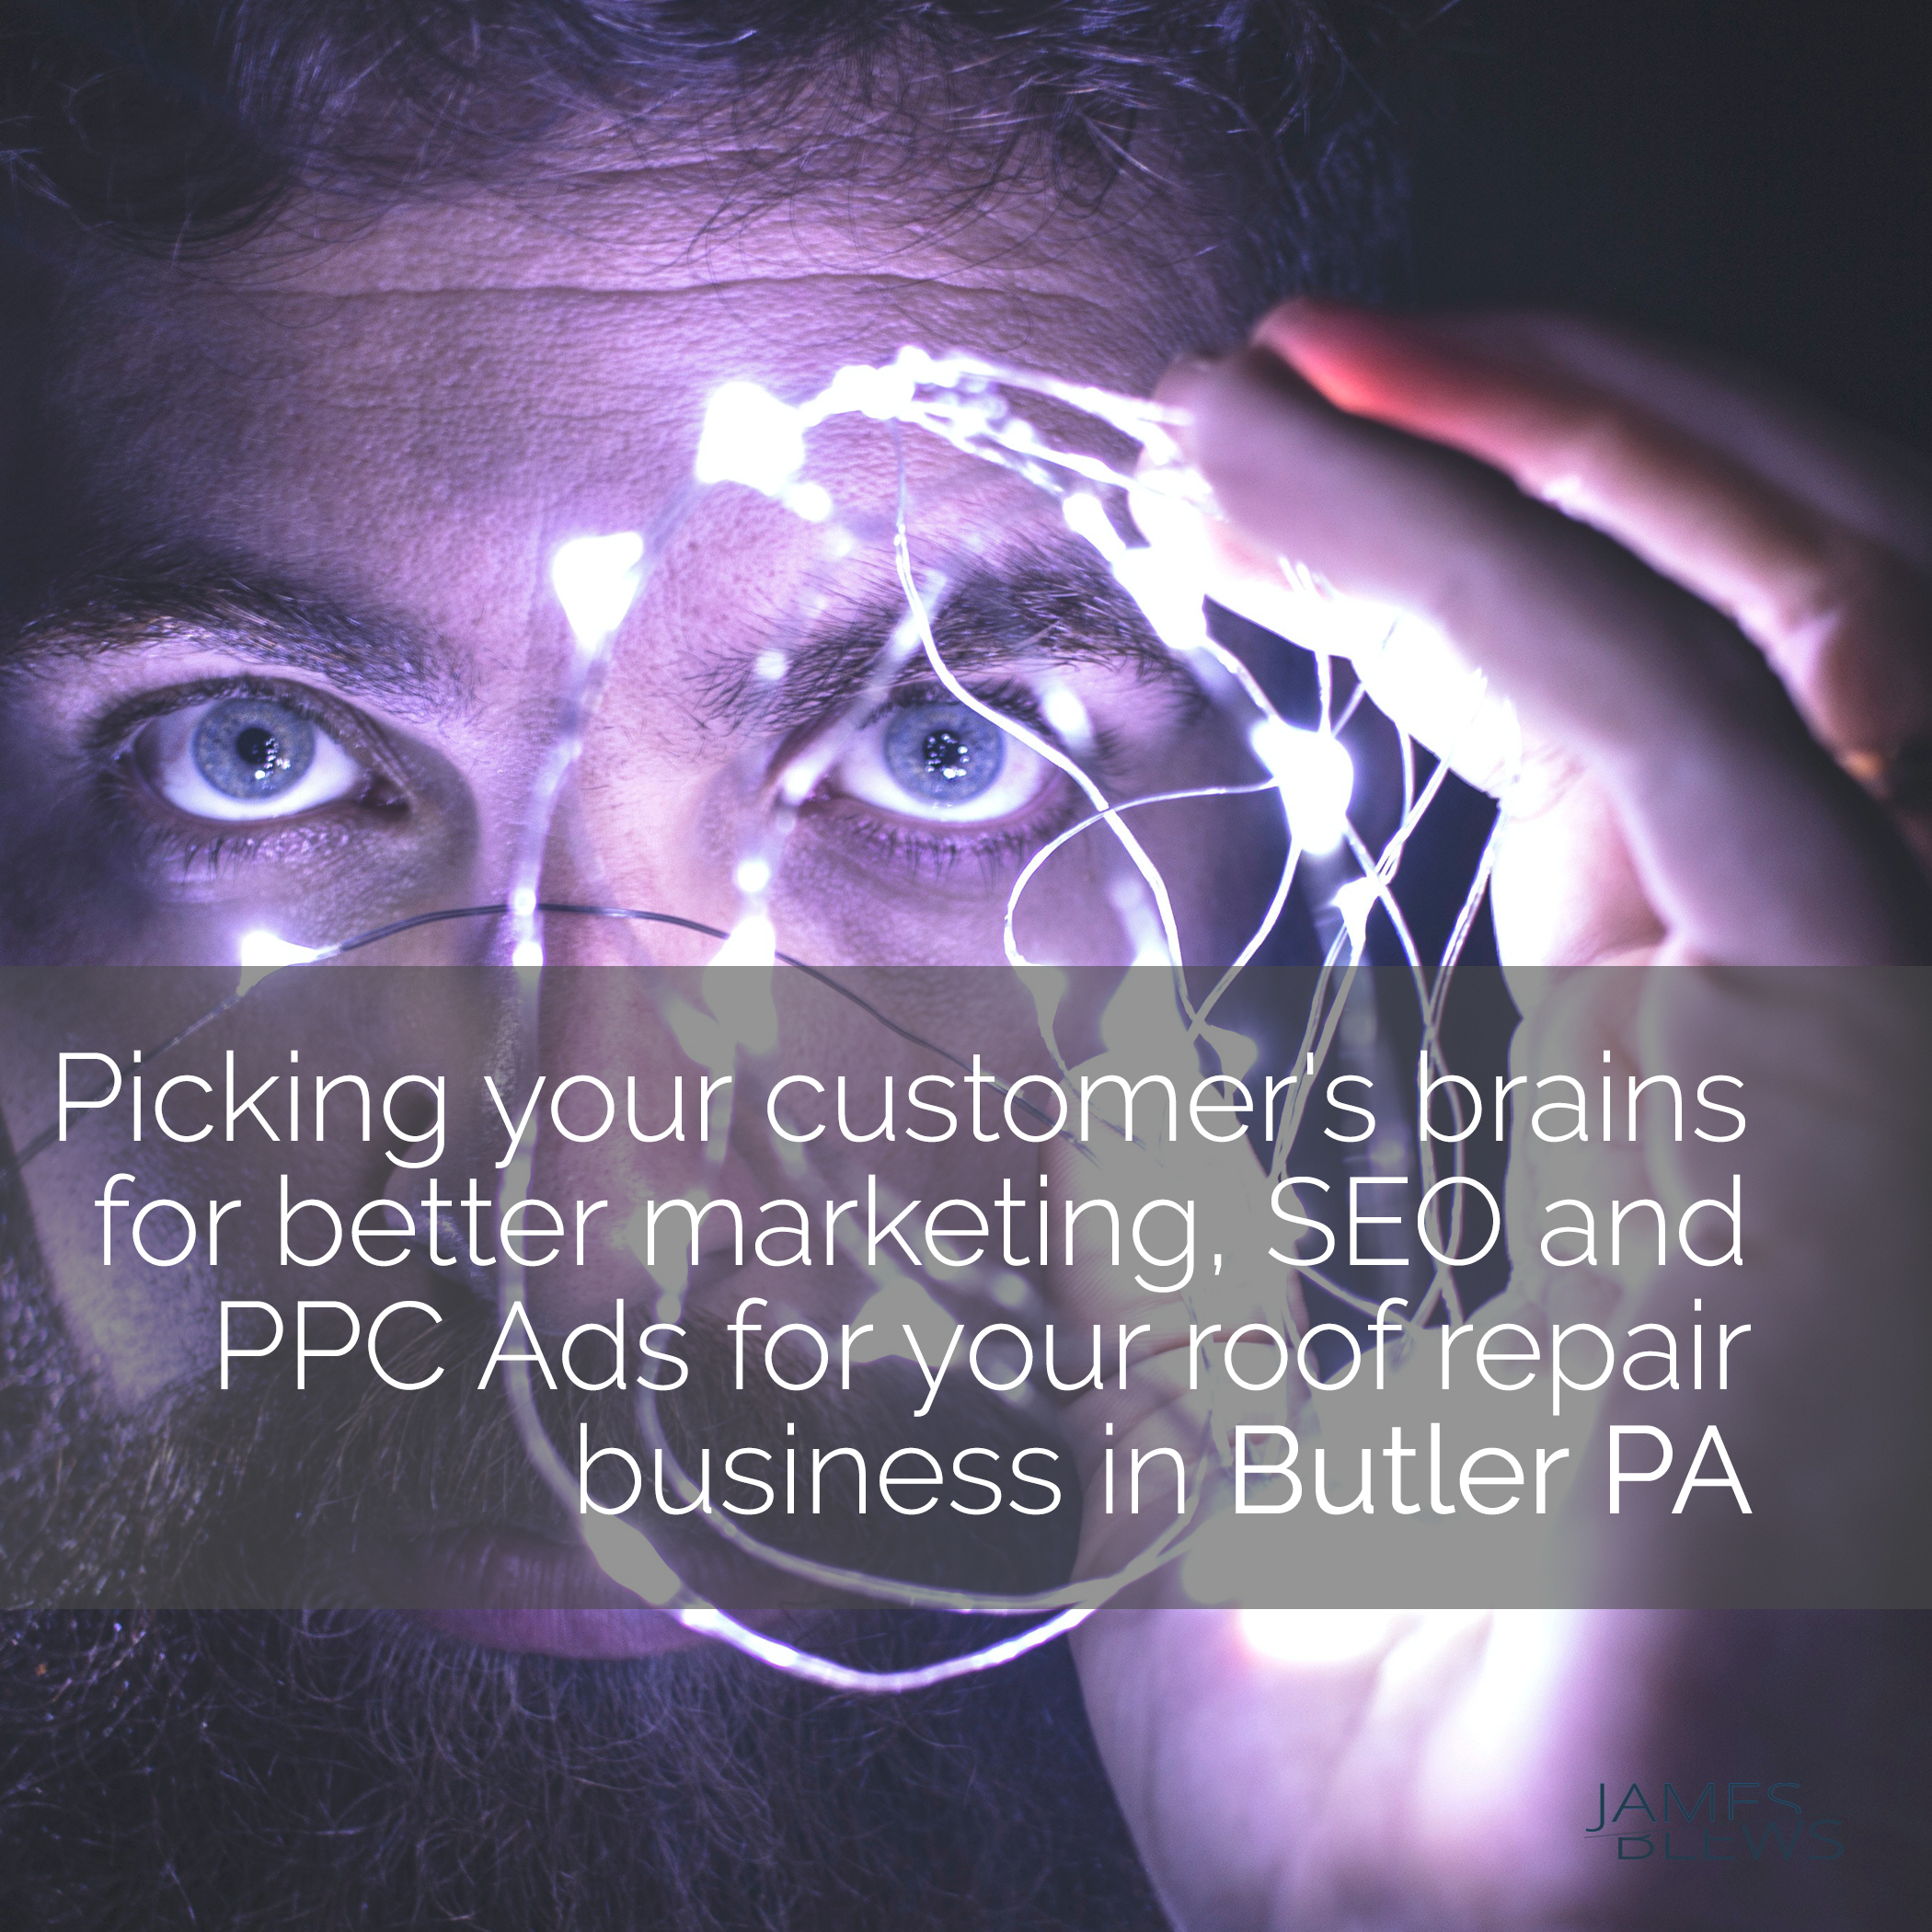 Picking your customer's brains for your roof repair business in Butler PA